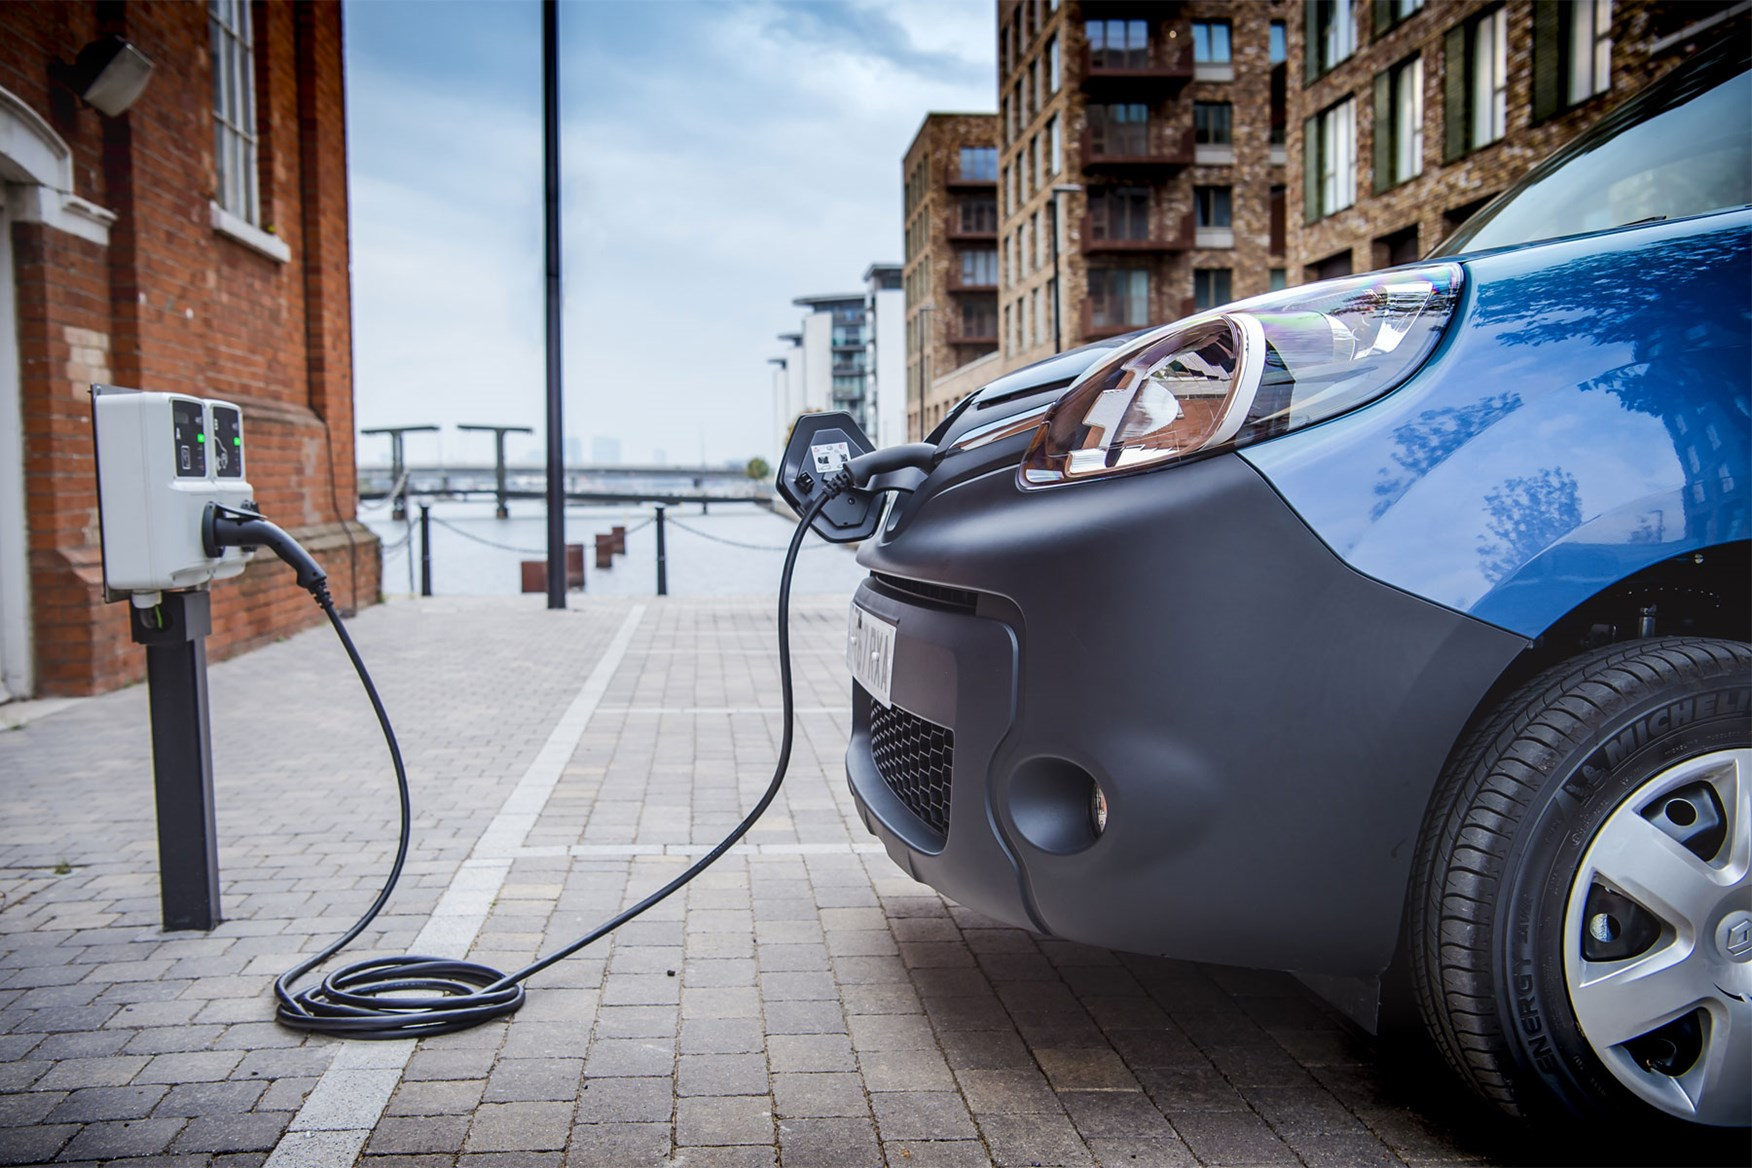 Renault Kangoo ZE electric van - plugged in to charge, 2020